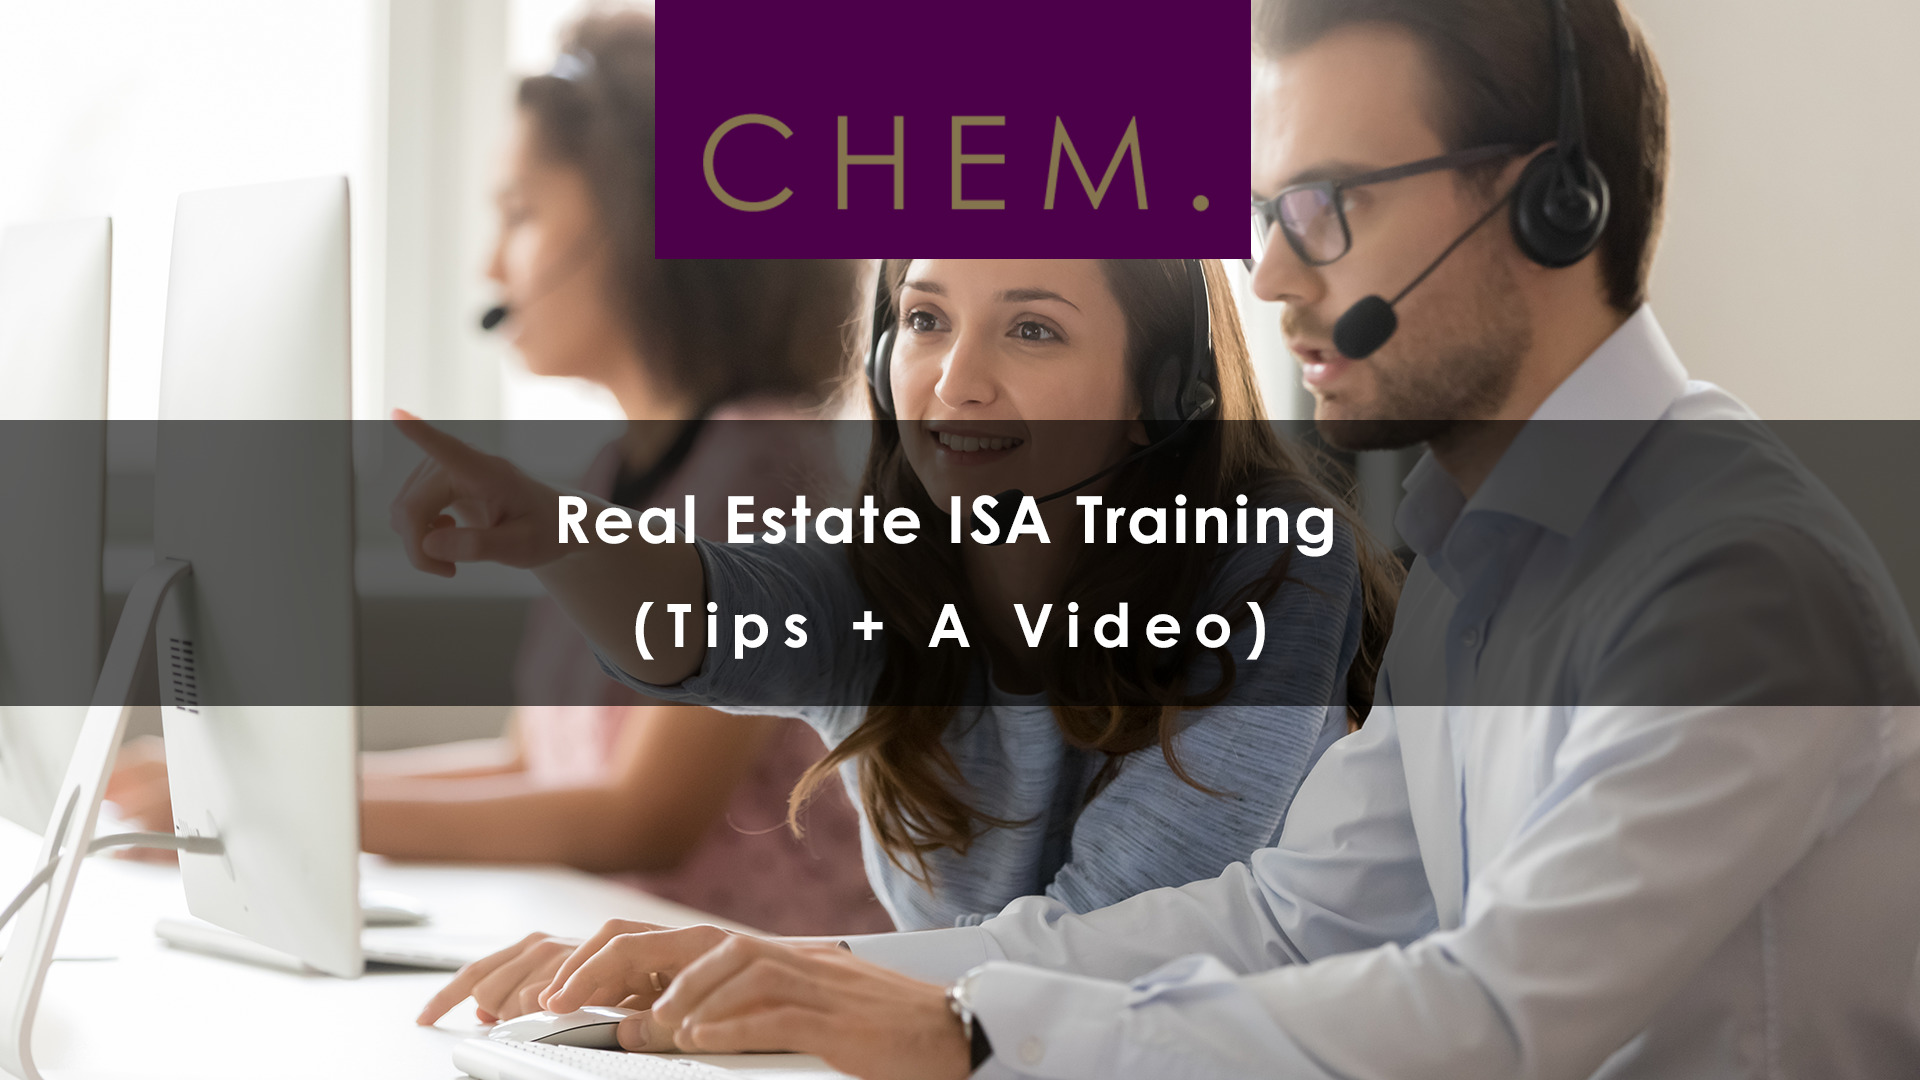 Real Estate ISA Training (Tips + A Video)